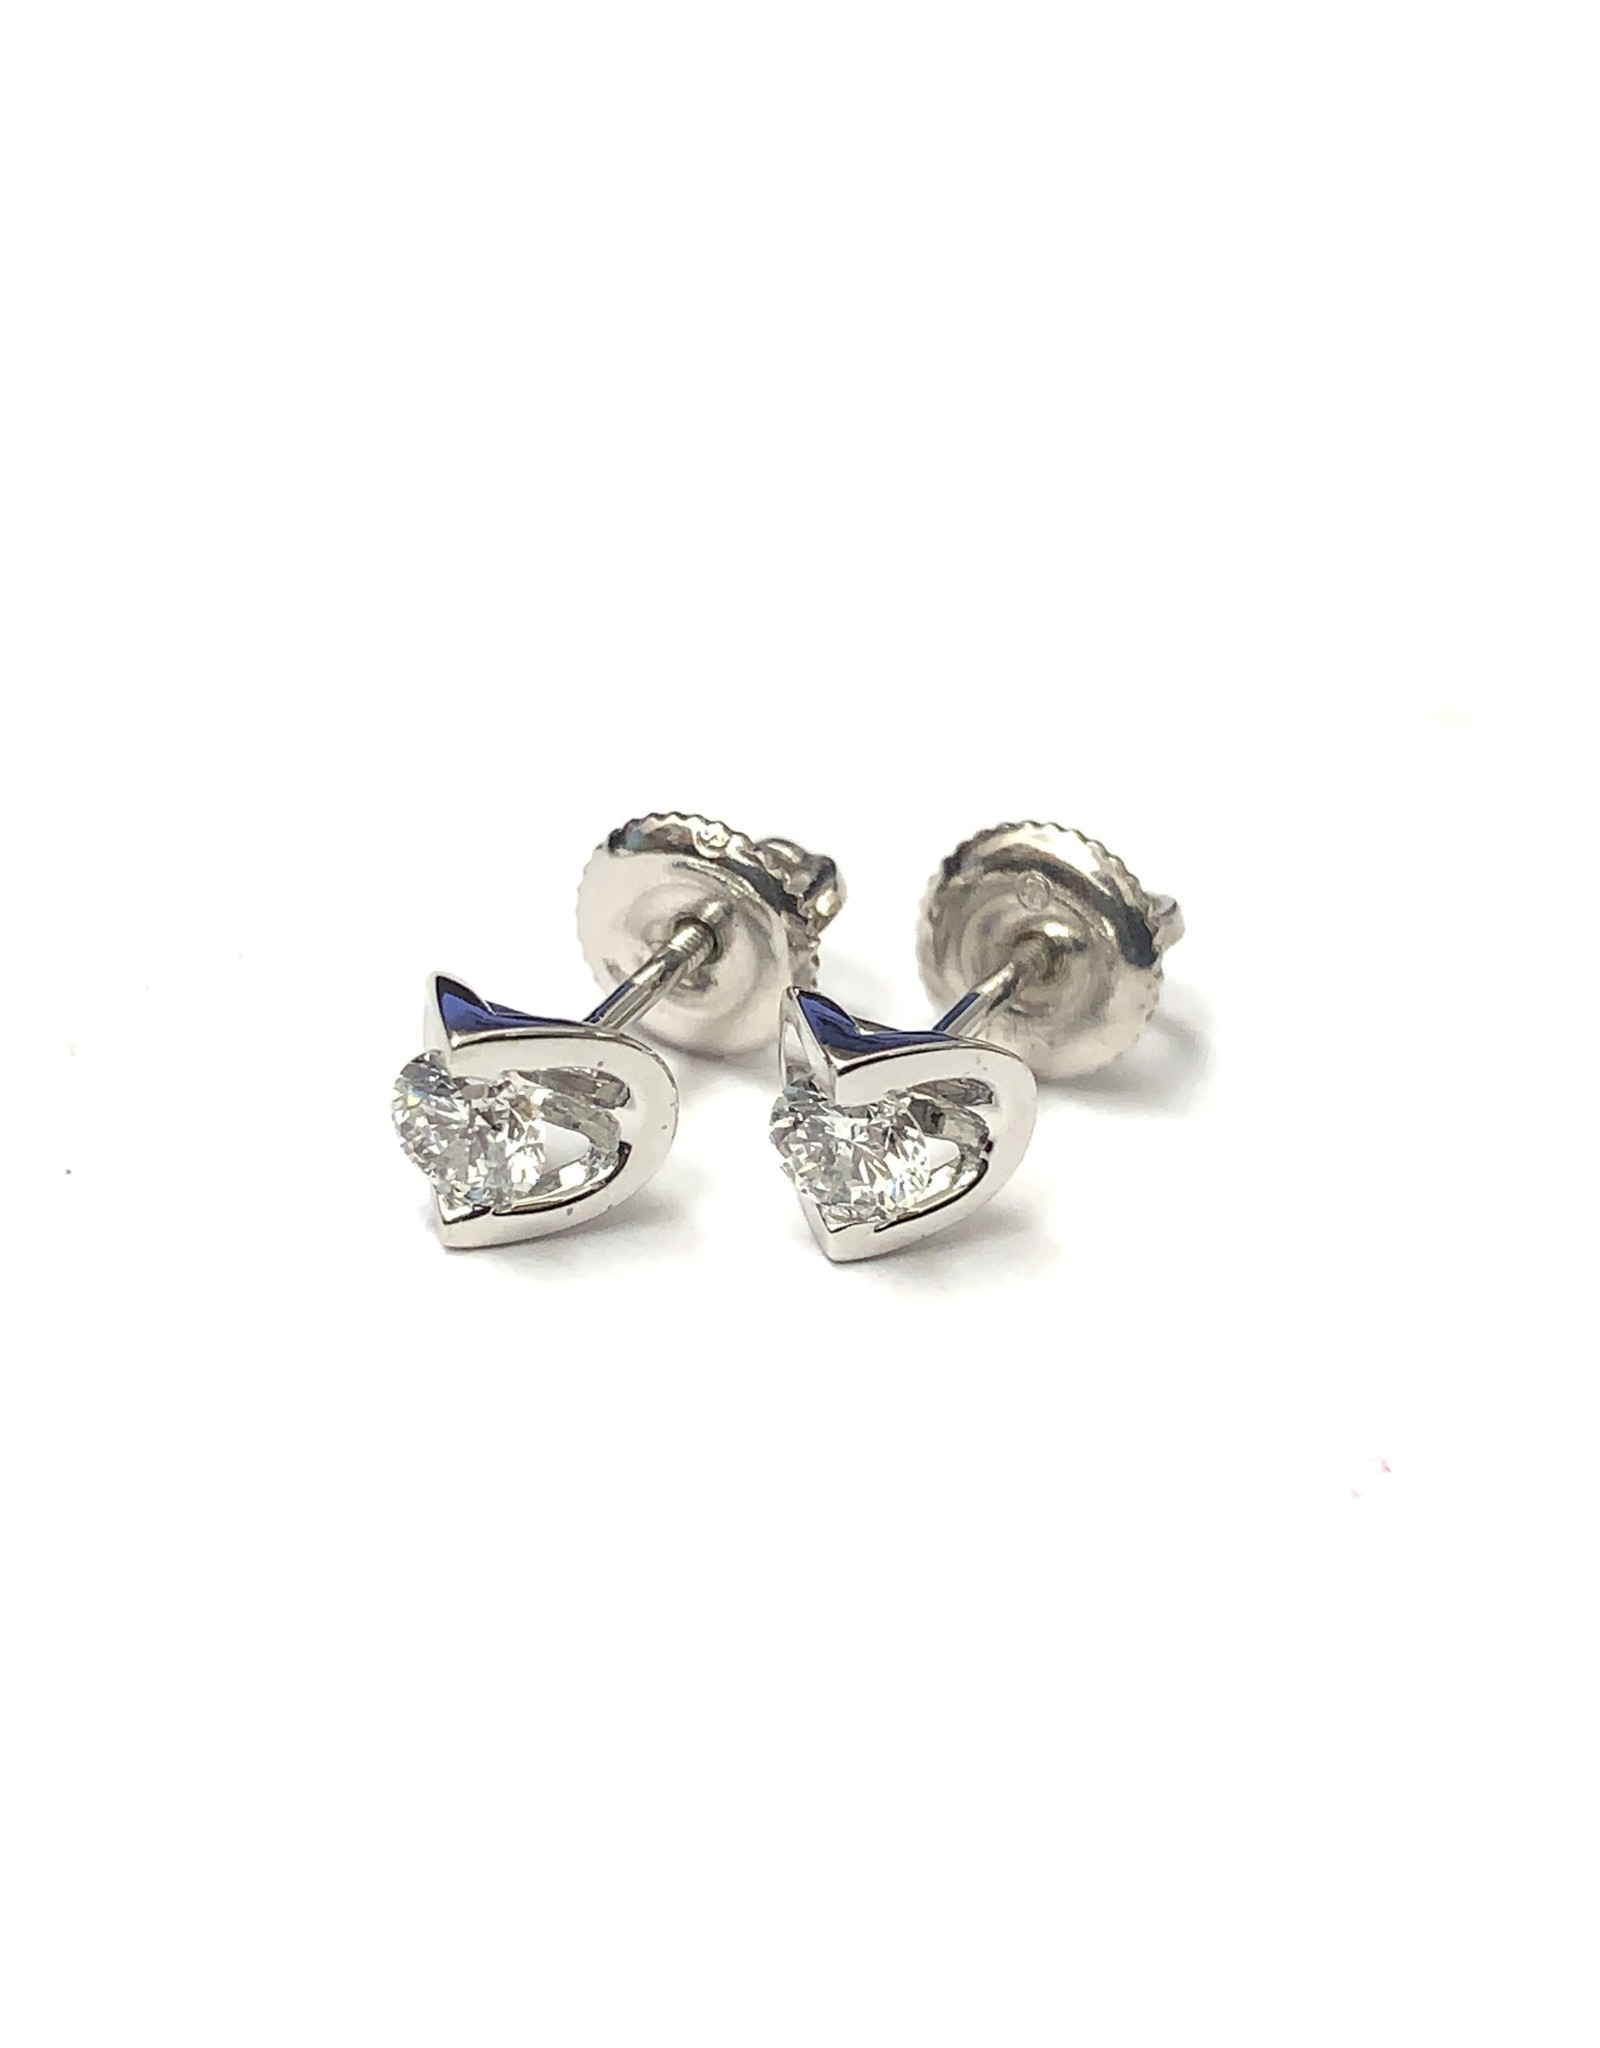 Canadian Diamond Stud Earrings 14KW